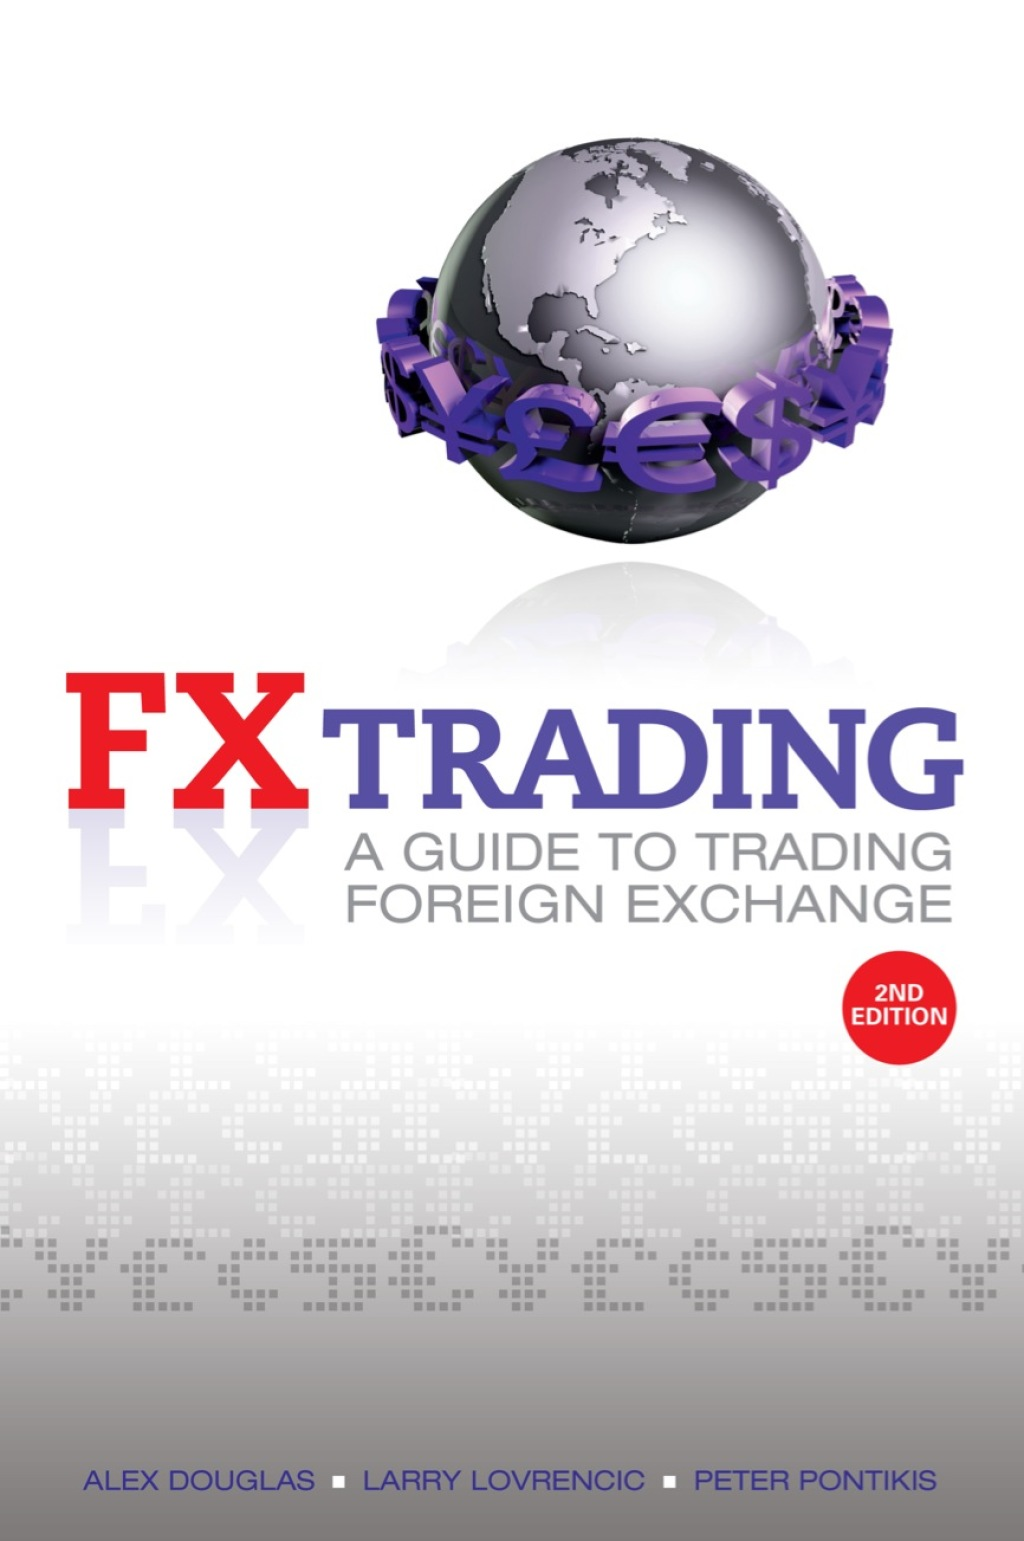 FX Trading: A Guide to Trading Foreign Exchange (ebook) eBooks